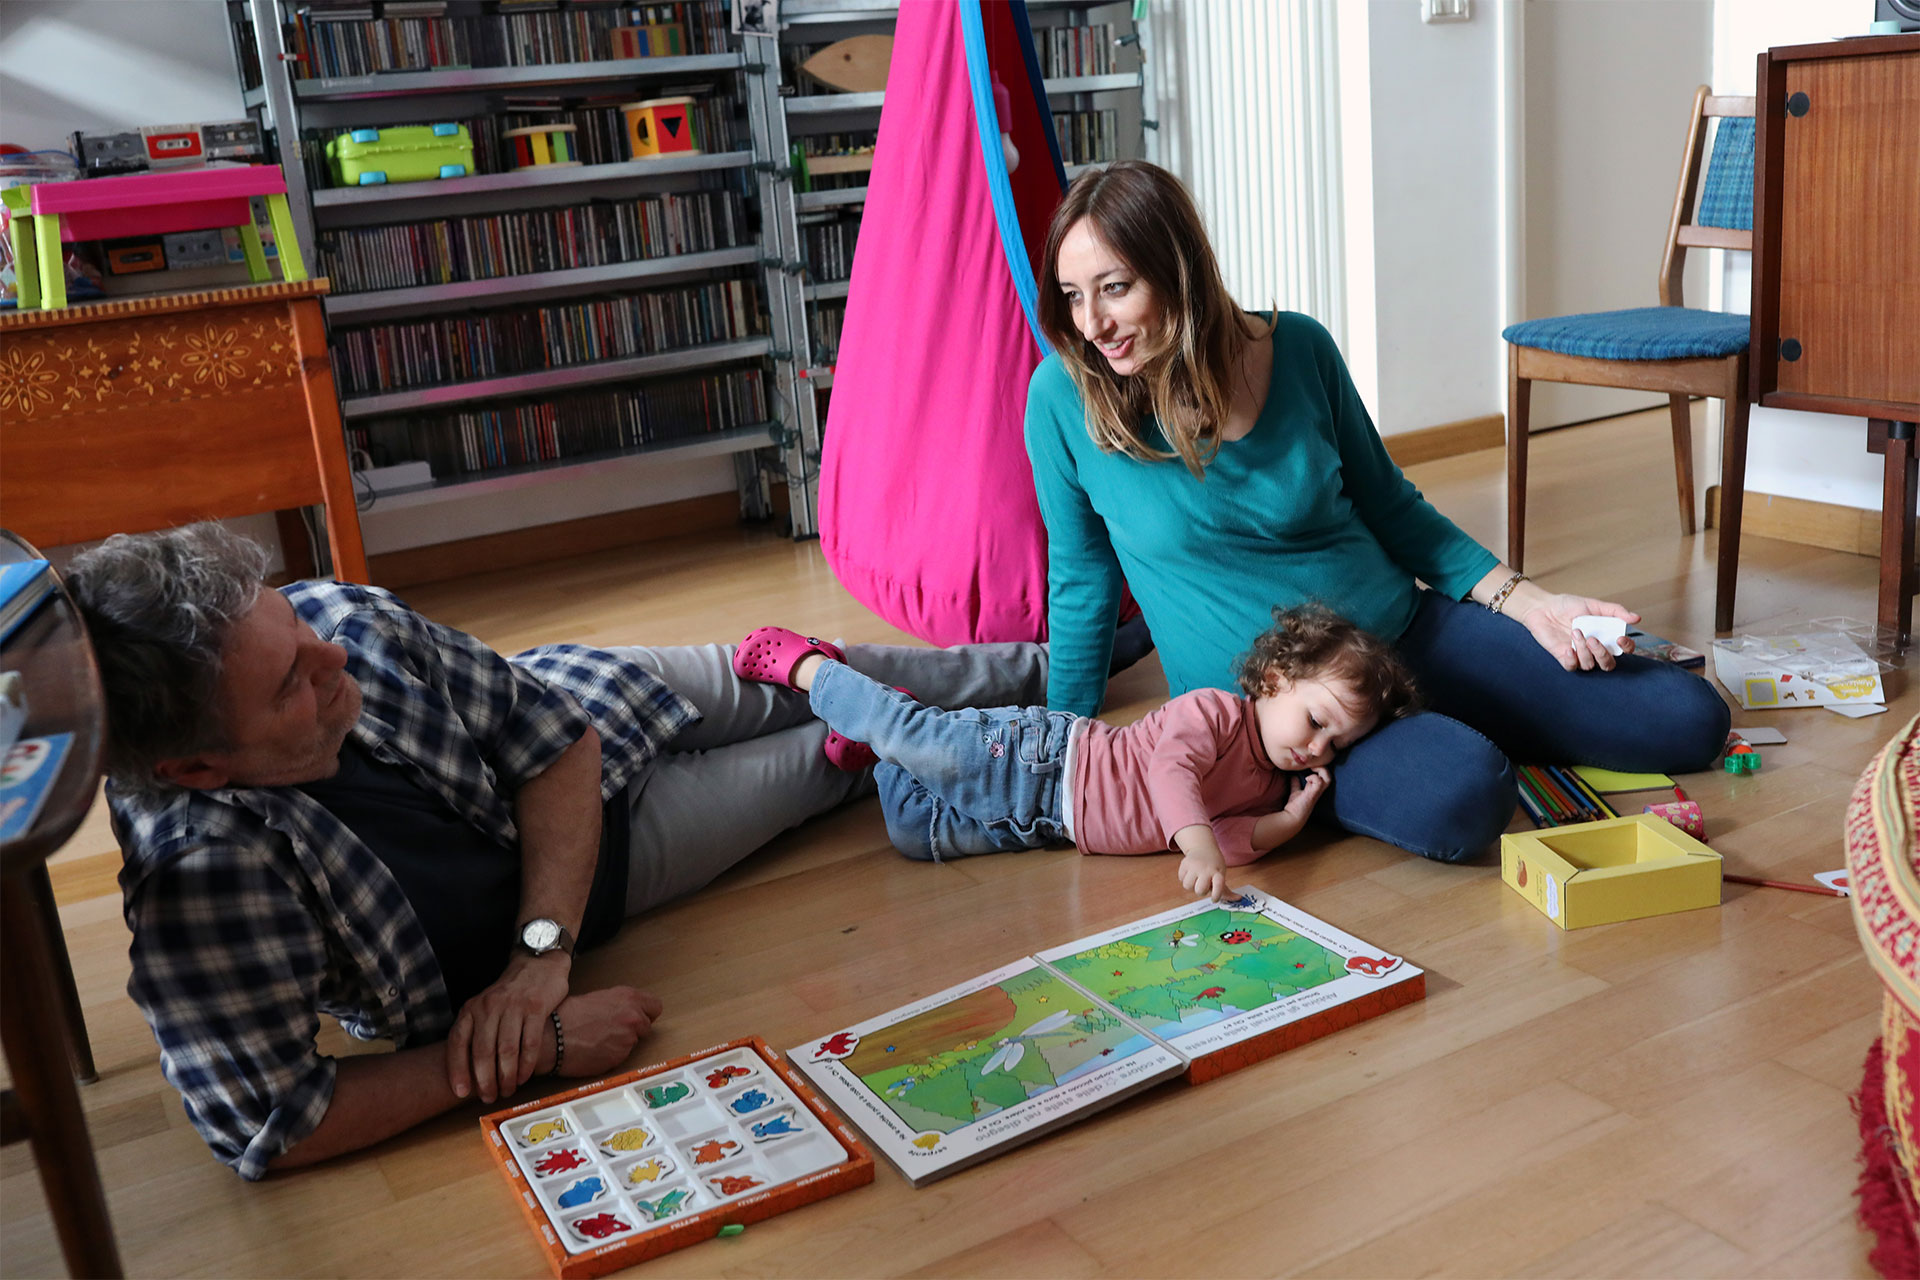 Le equilibriste, report Save the children sulle mamme italiane